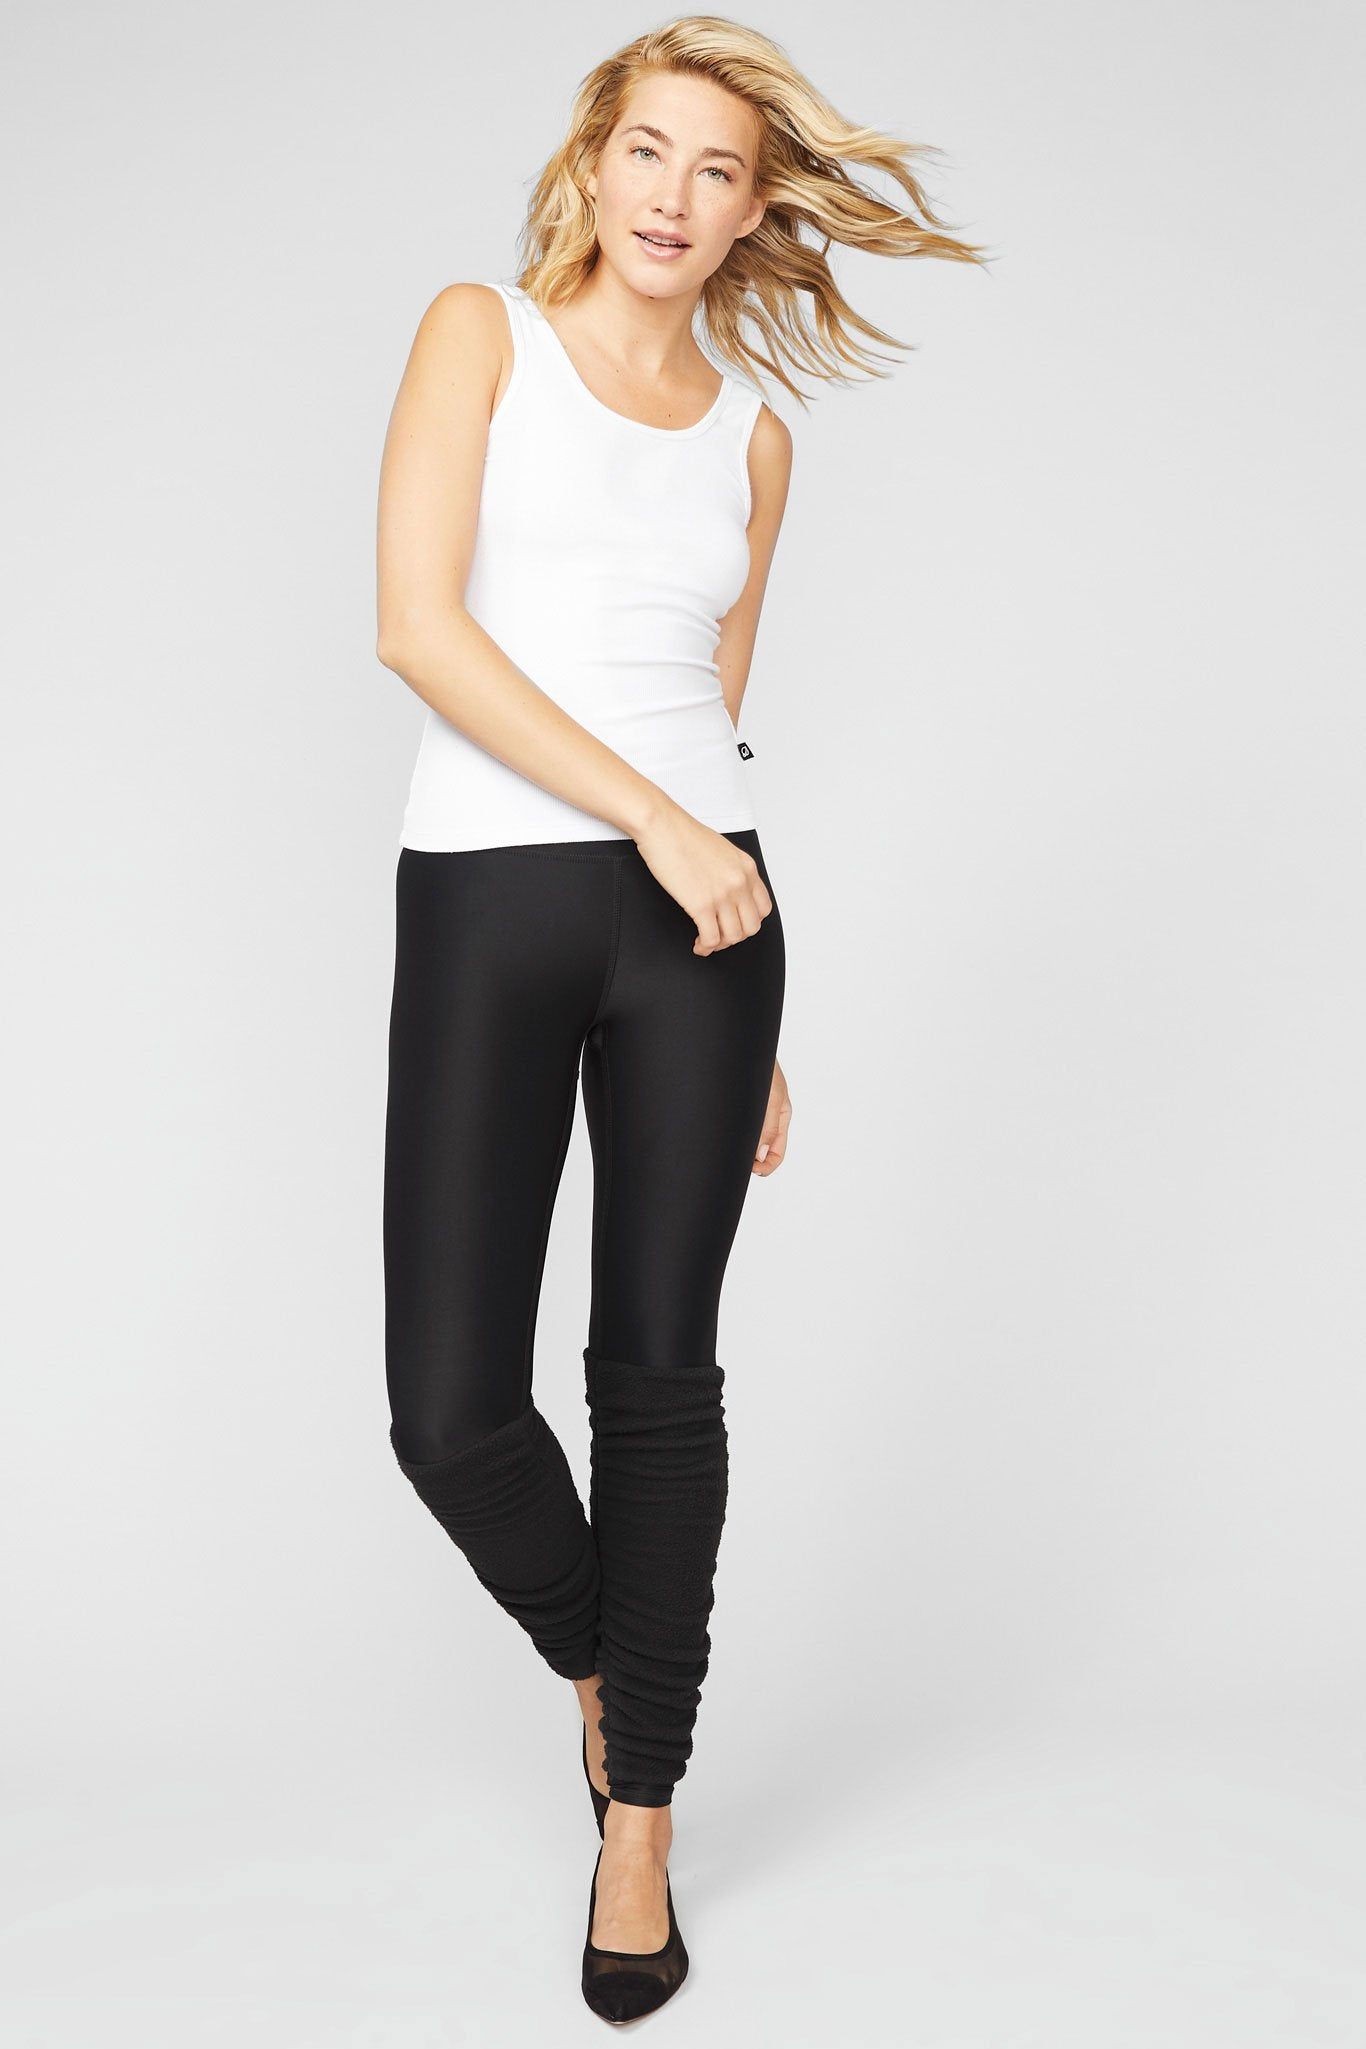 Black Legwarmer UpLift Leggings